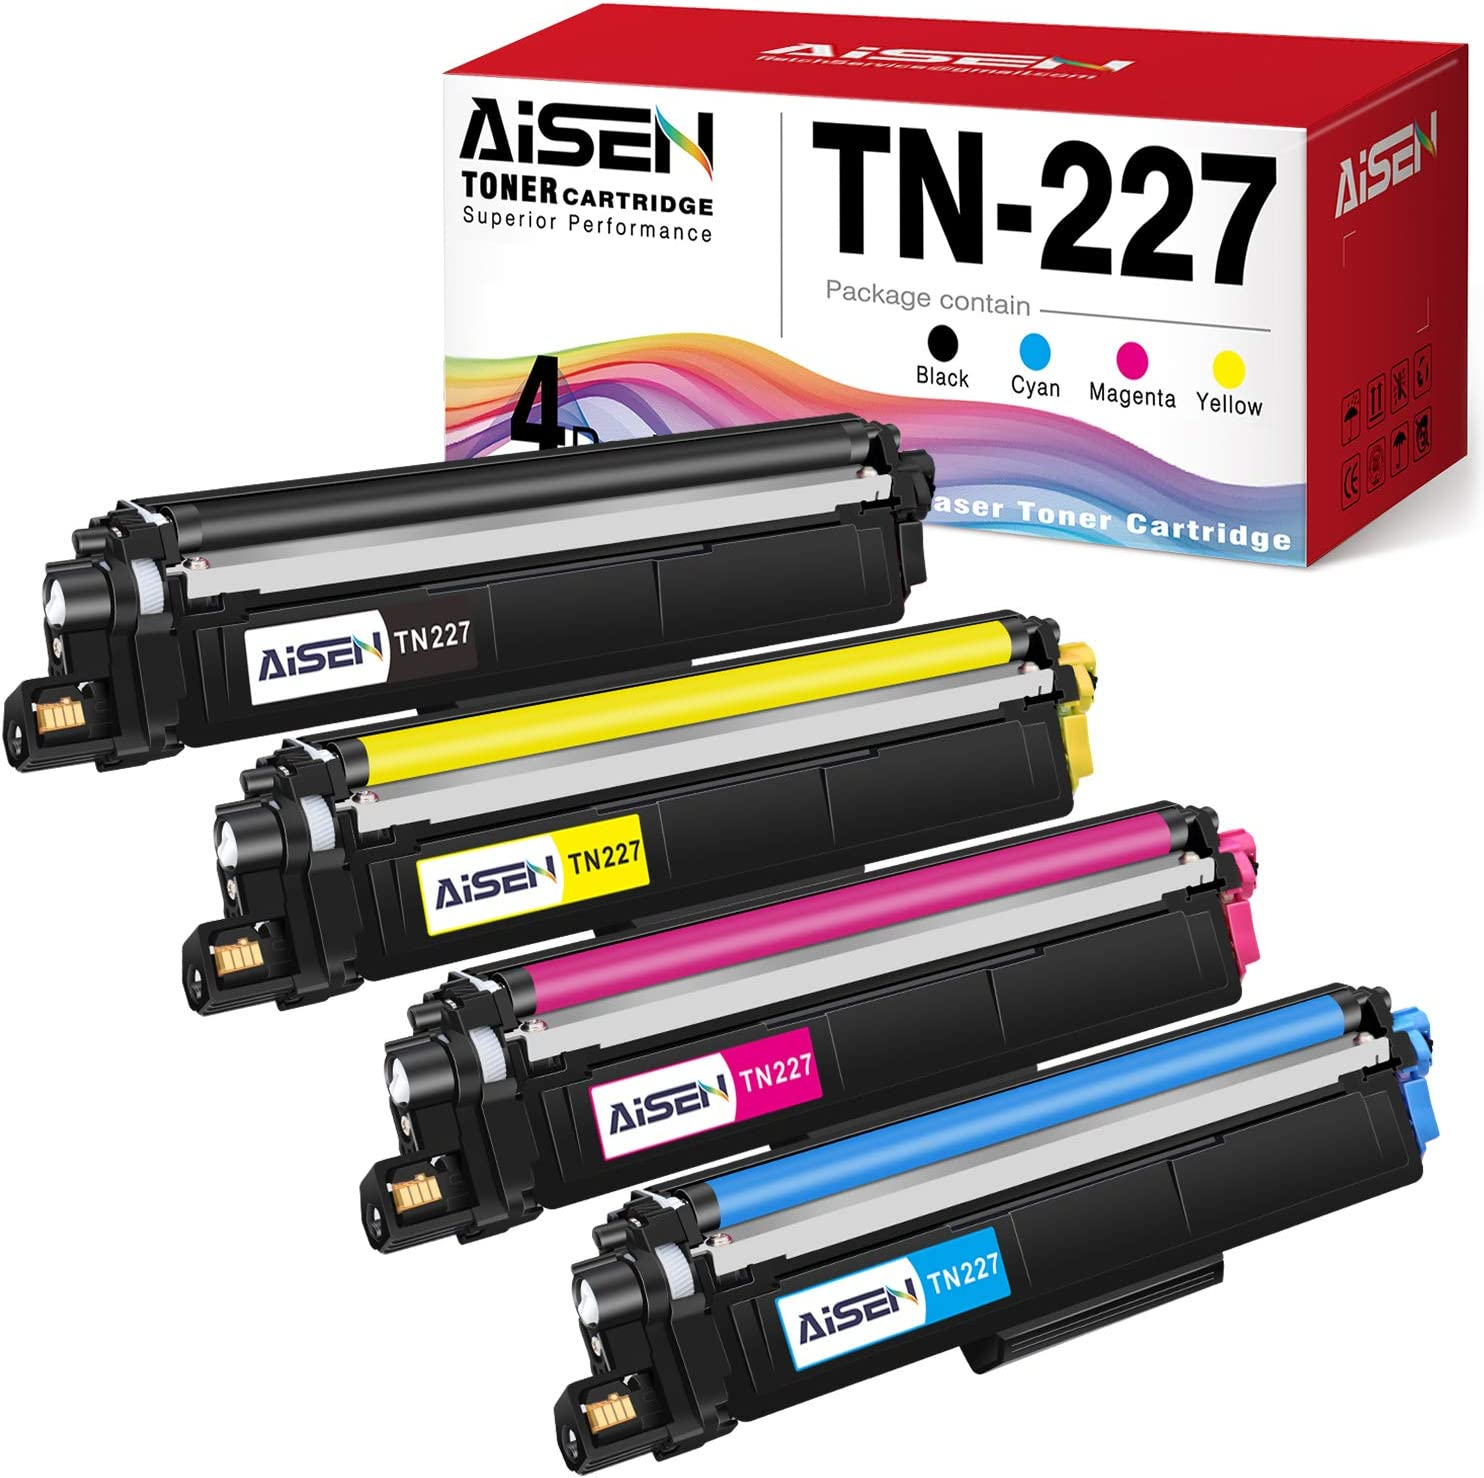 Free Amazon Promo Code 2020 for AISEN with Chip Compatible Toner Cartridges